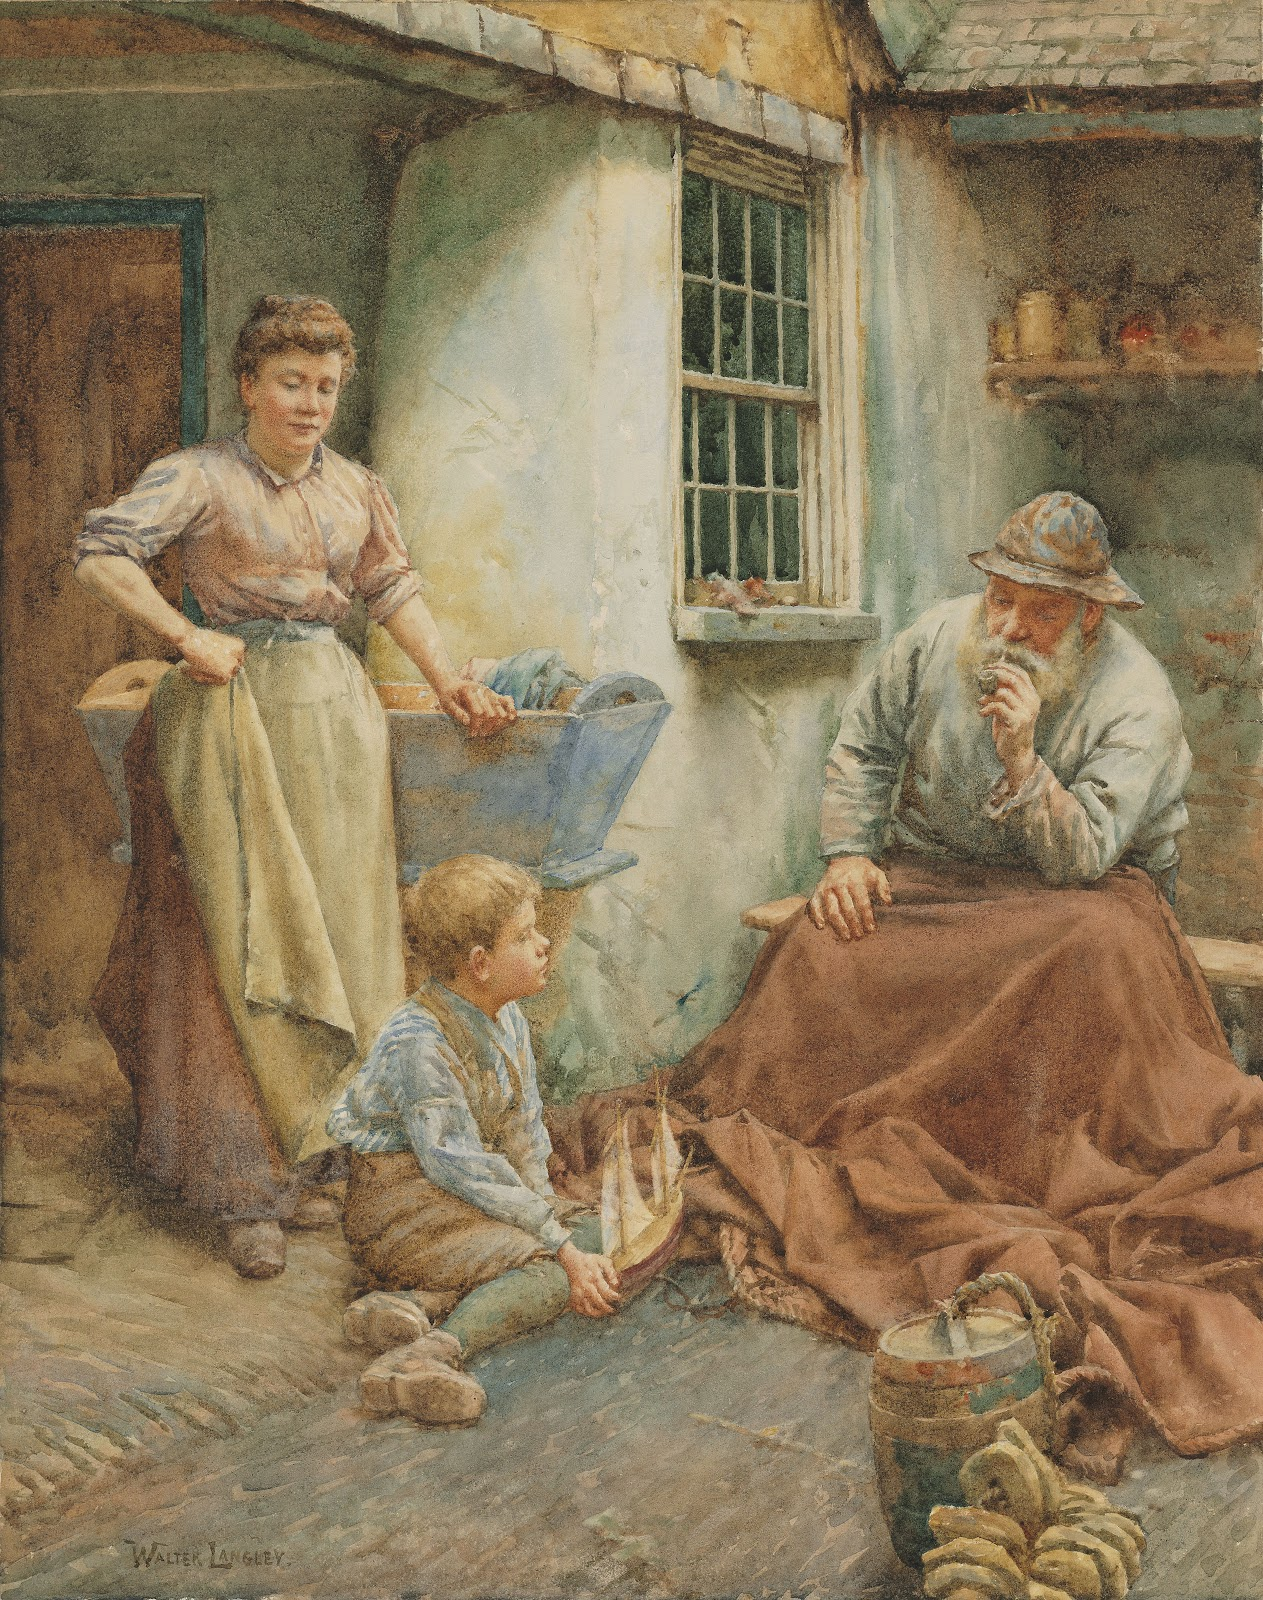 Walter Langley The fishermans tales